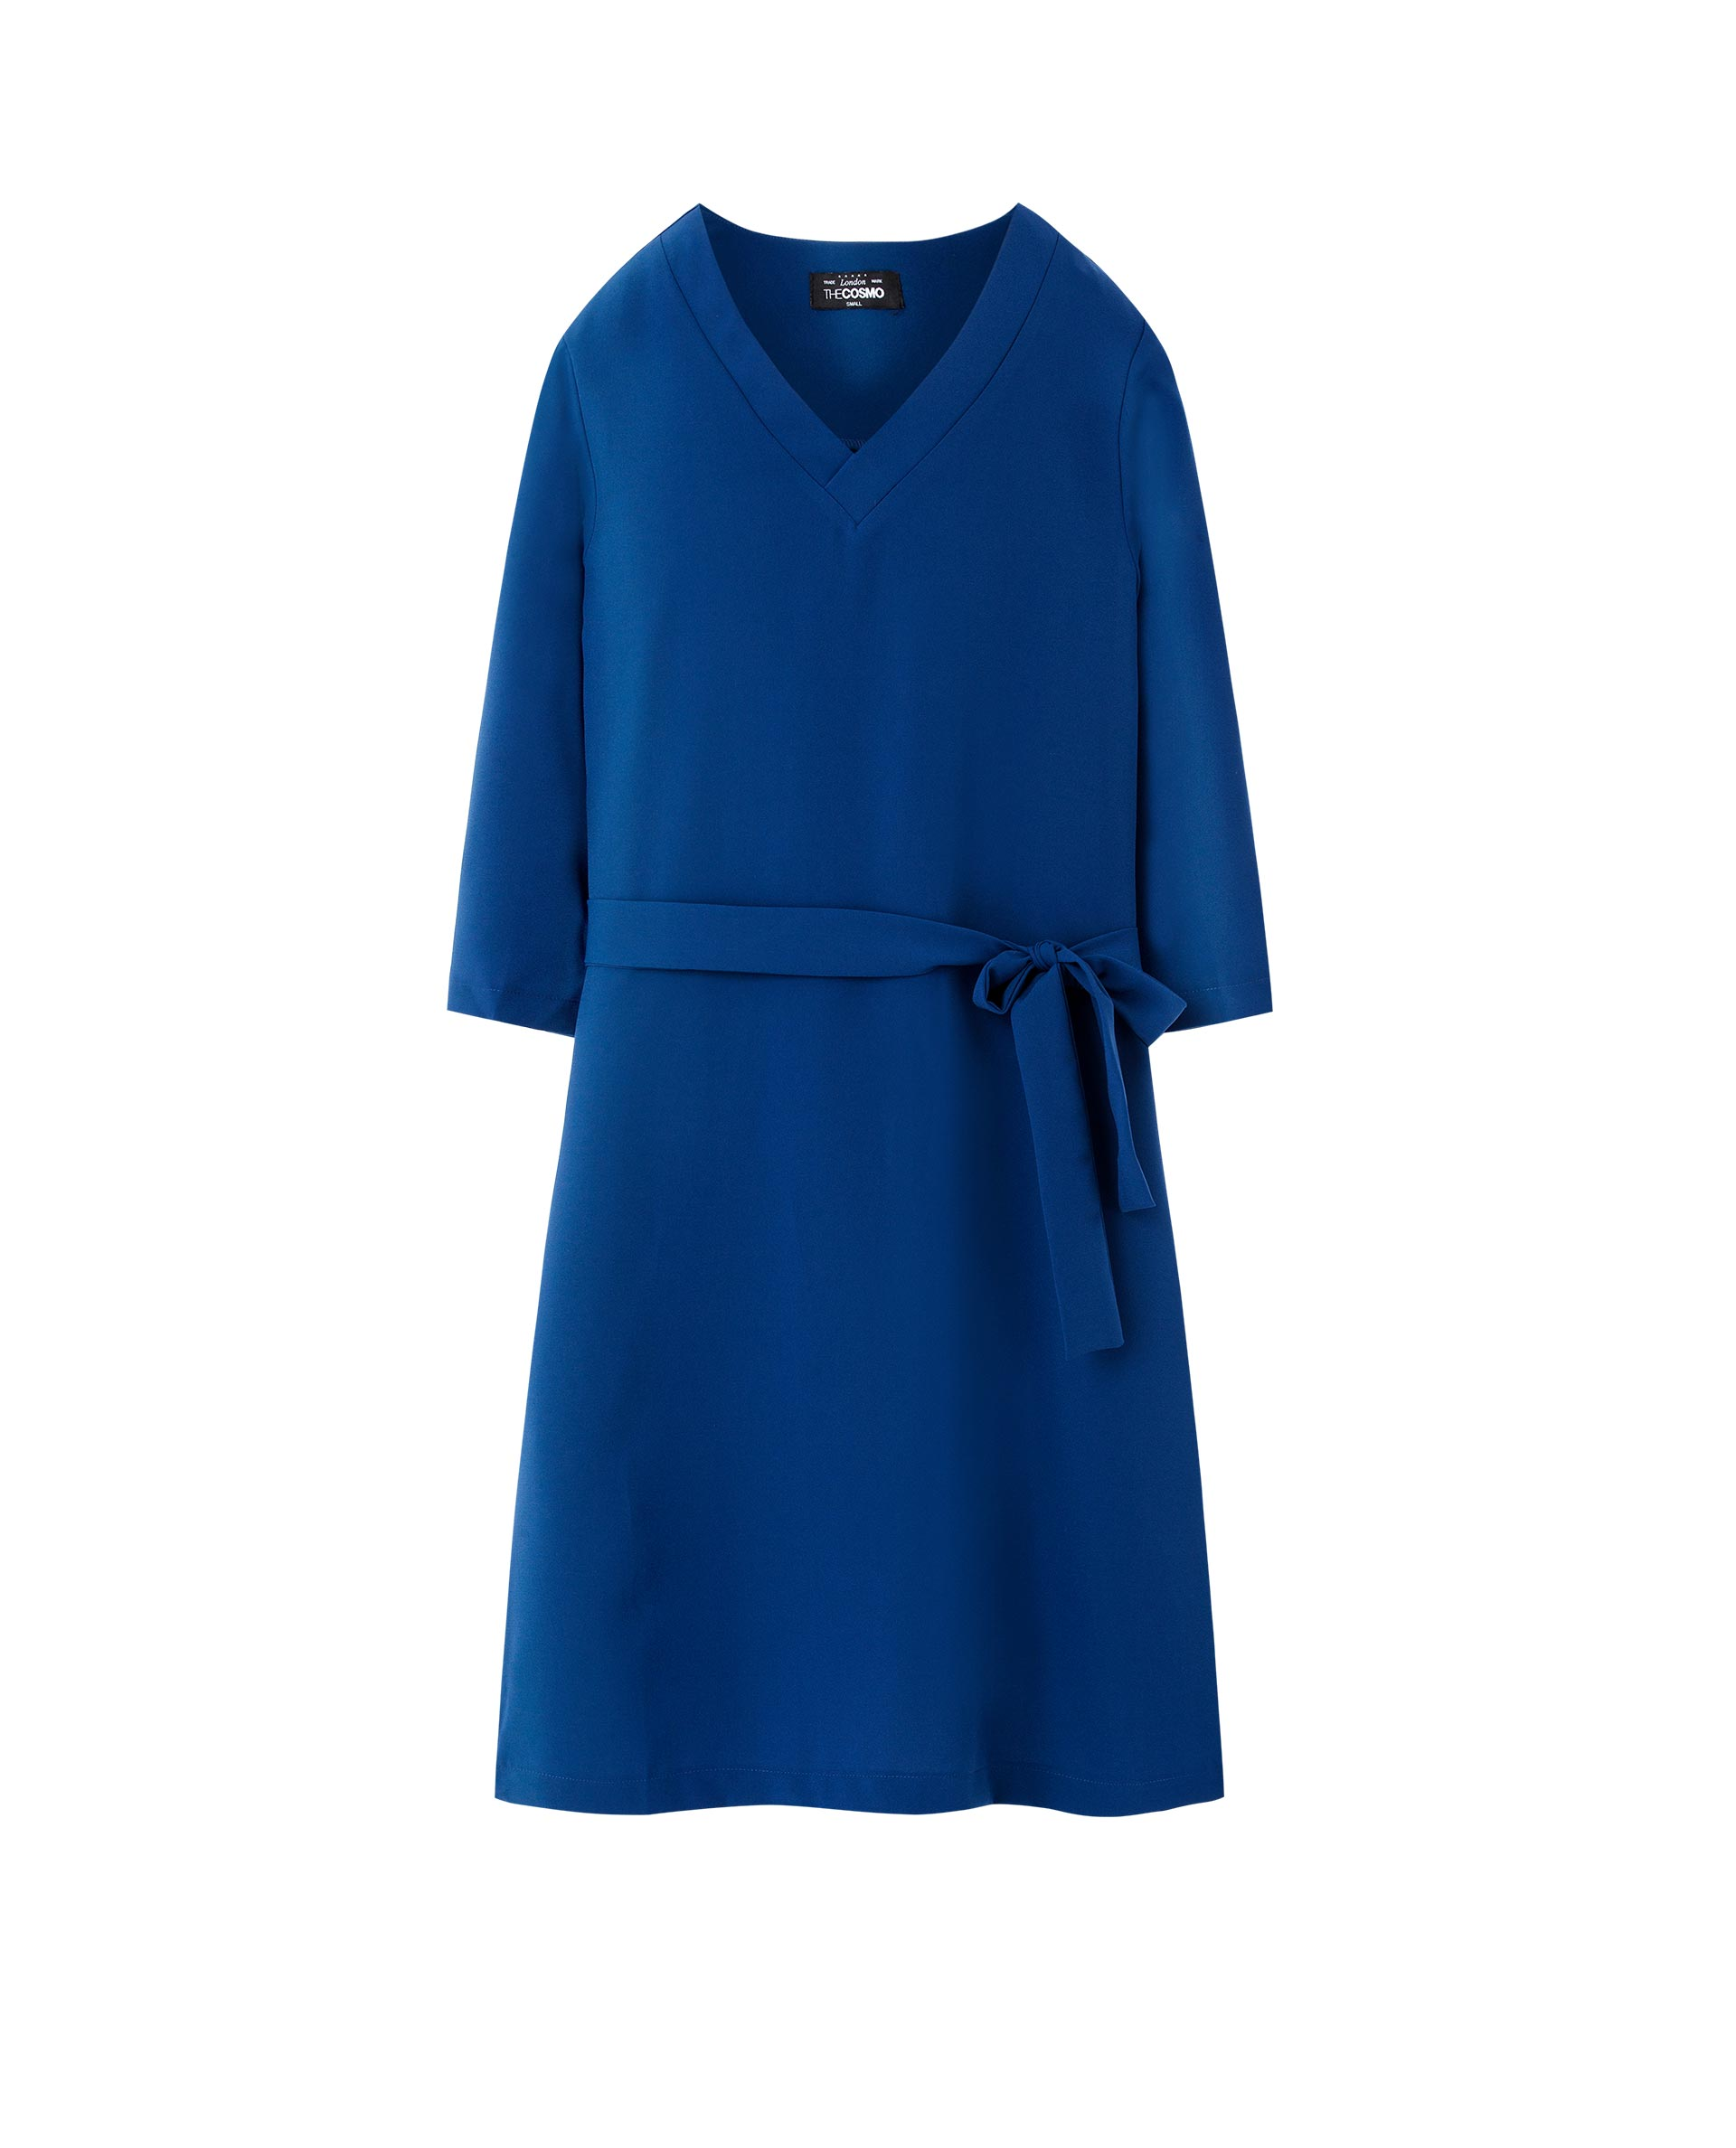 EVELYN DRESS (BLUE)